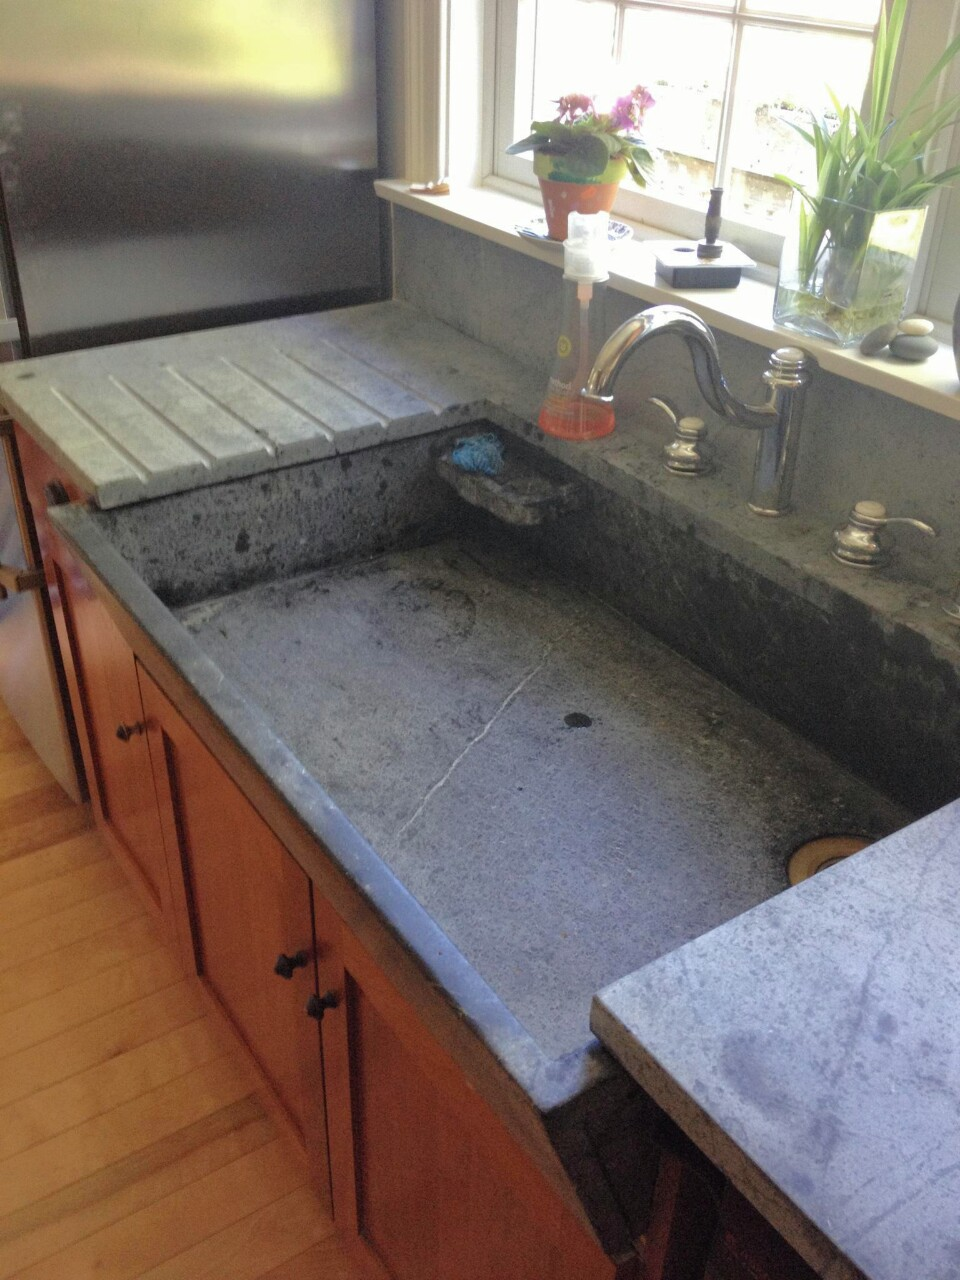 Soapstone Sink : Refurbished-Soapstone-Sink-with-Drainboard-2.jpg